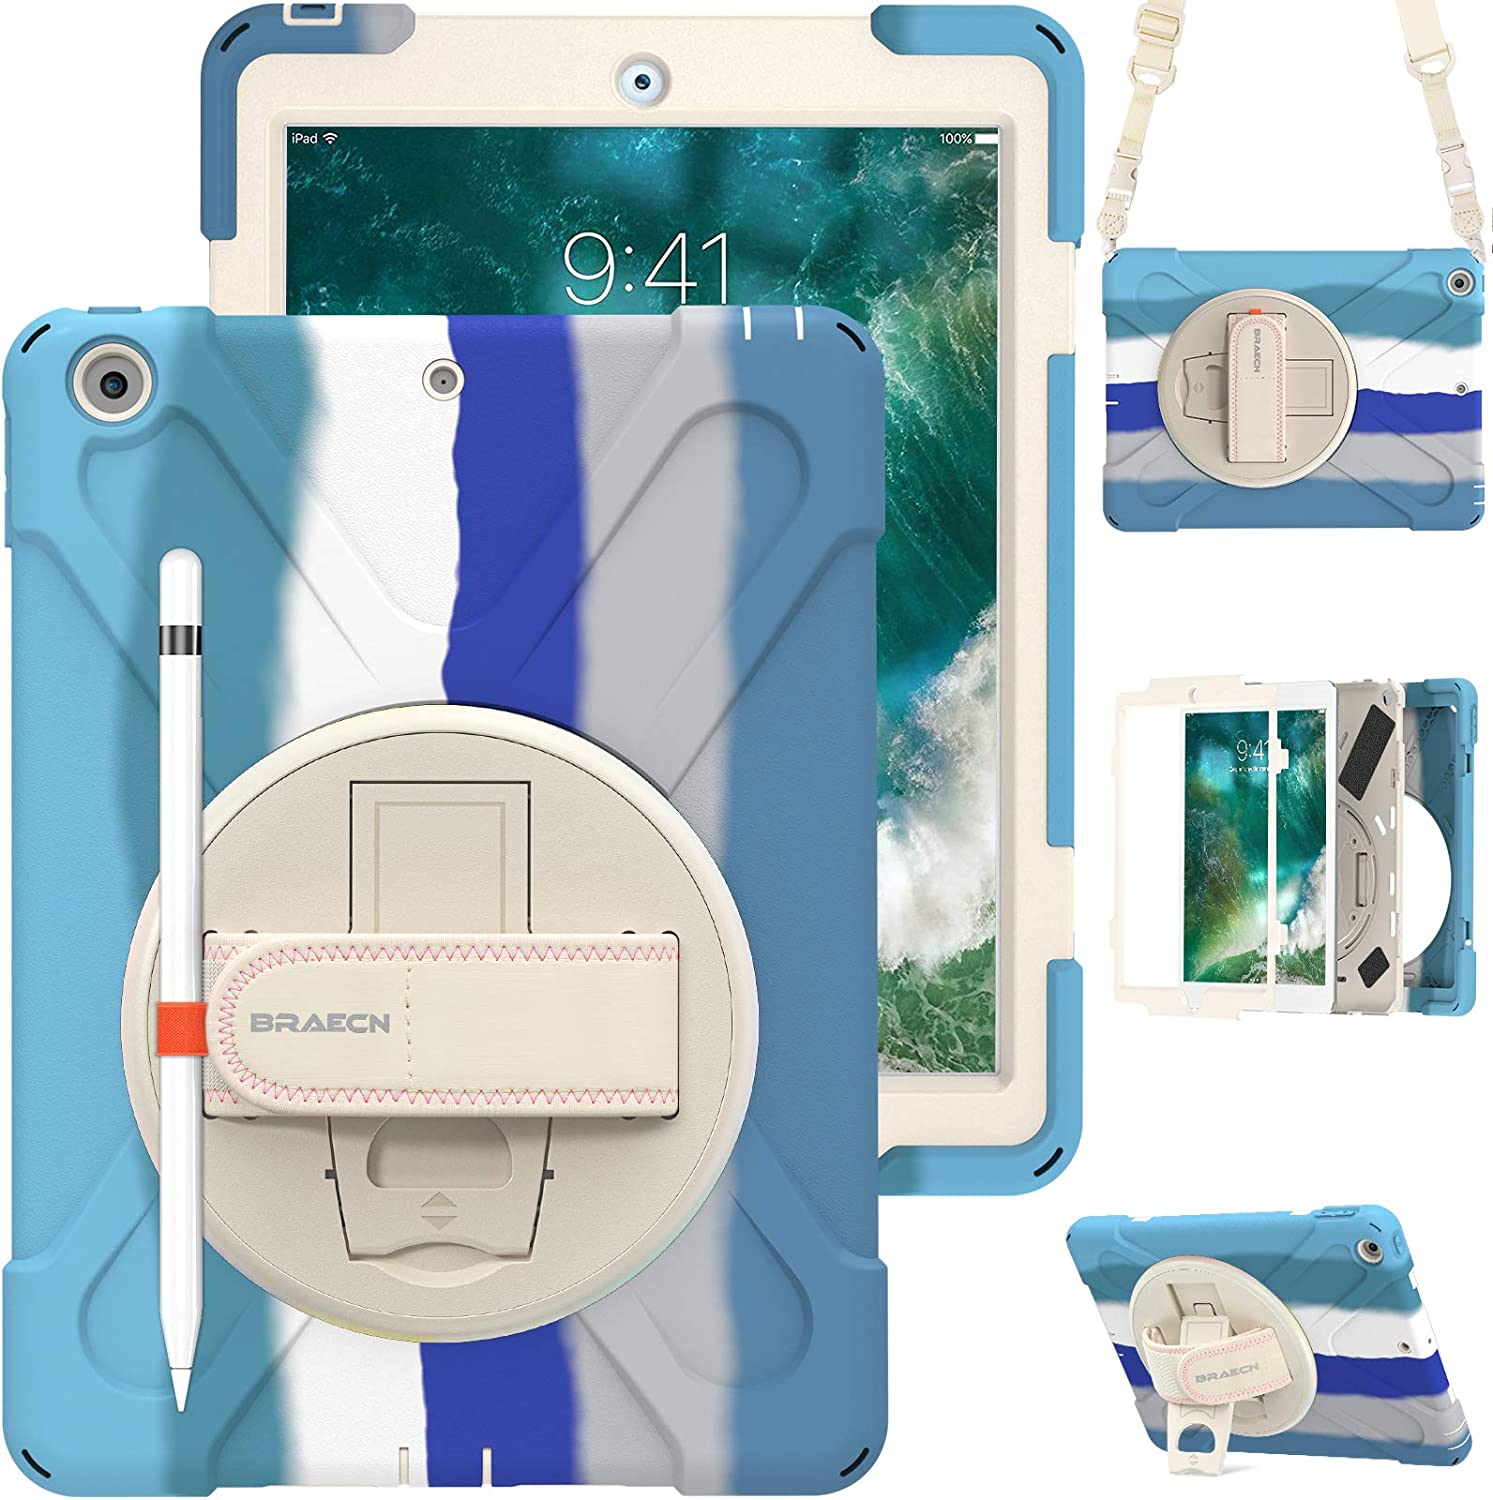 """BRAECN iPad 9.7 Inch Case 2018/2017, Heavy Duty Shockproof Case Cover with Adjustable Hand Strap, Carrying Shoulder Strap, Kickstand, Pencil Holder for Apple iPad 6th 5th 9.7"""" for Kids-Rainbow Blue"""